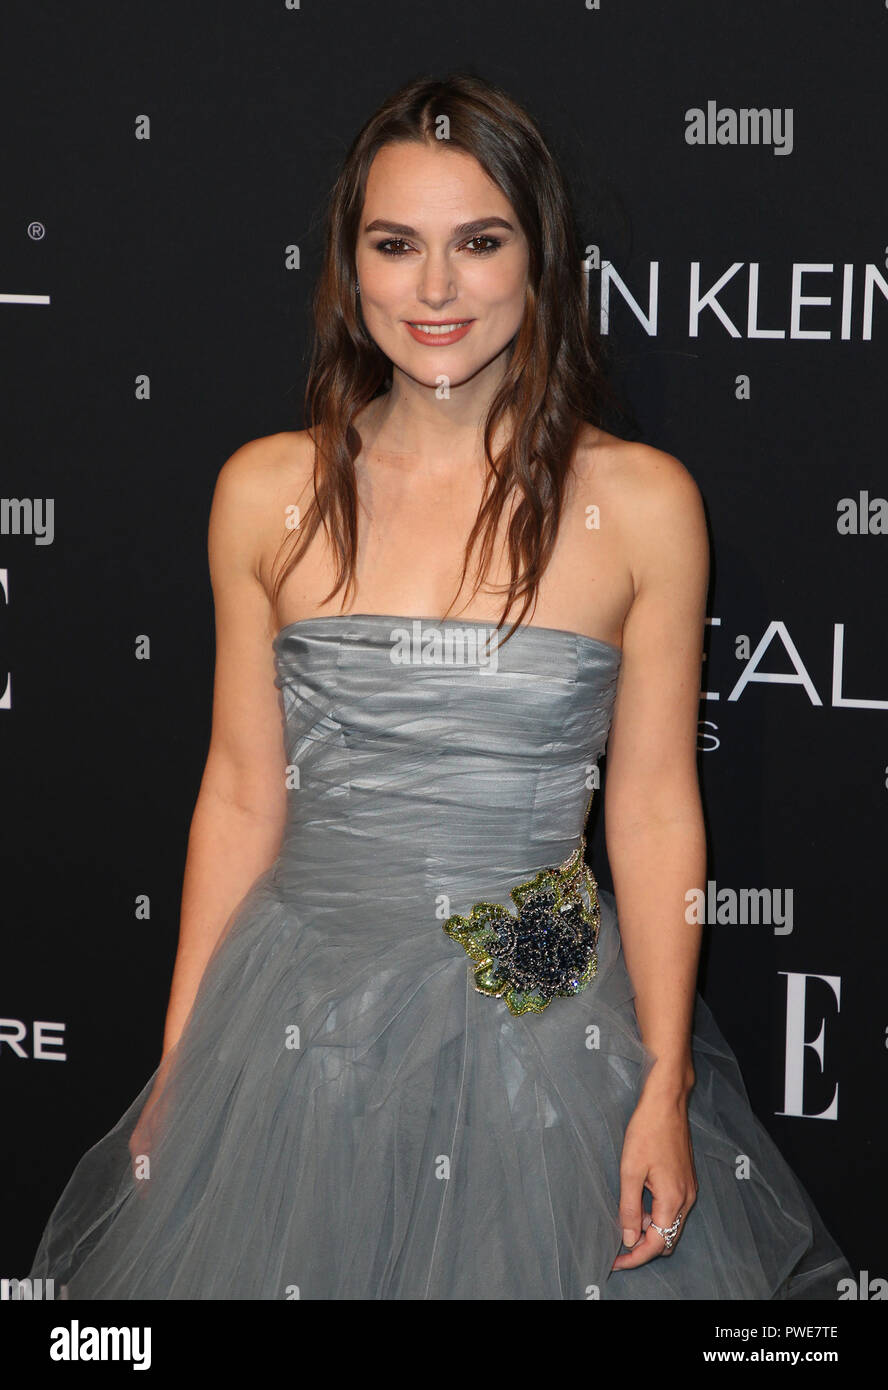 Los Angeles, CA, USA. 15th Oct, 2018. 15 October 2018- Los Angeles, California - Keira Knightley, 25th Annual ELLE Women In Hollywood Celebration held at Four Seasons Hotel Los Angeles at Beverly Hills. Photo Credit: Faye Sadou/AdMedia Credit: Faye Sadou/AdMedia/ZUMA Wire/Alamy Live News - Stock Image